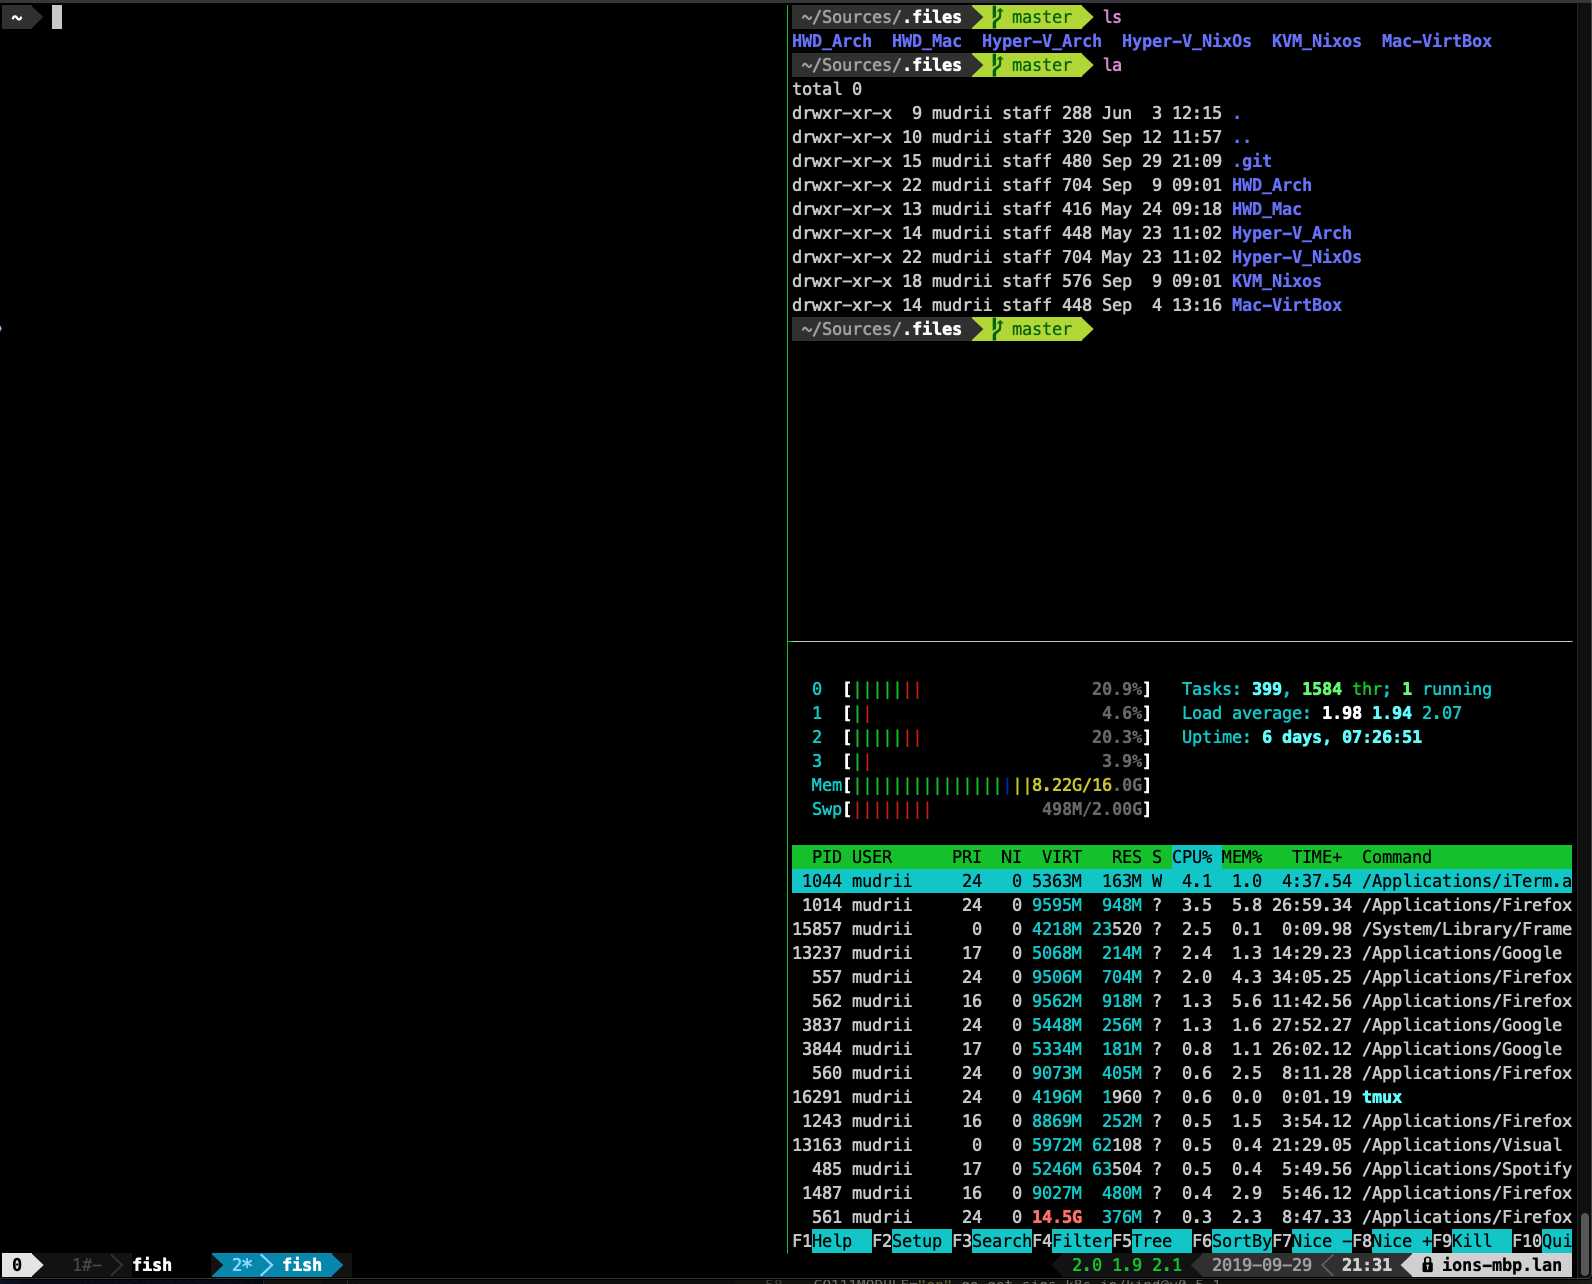 Improved terminal view/layout